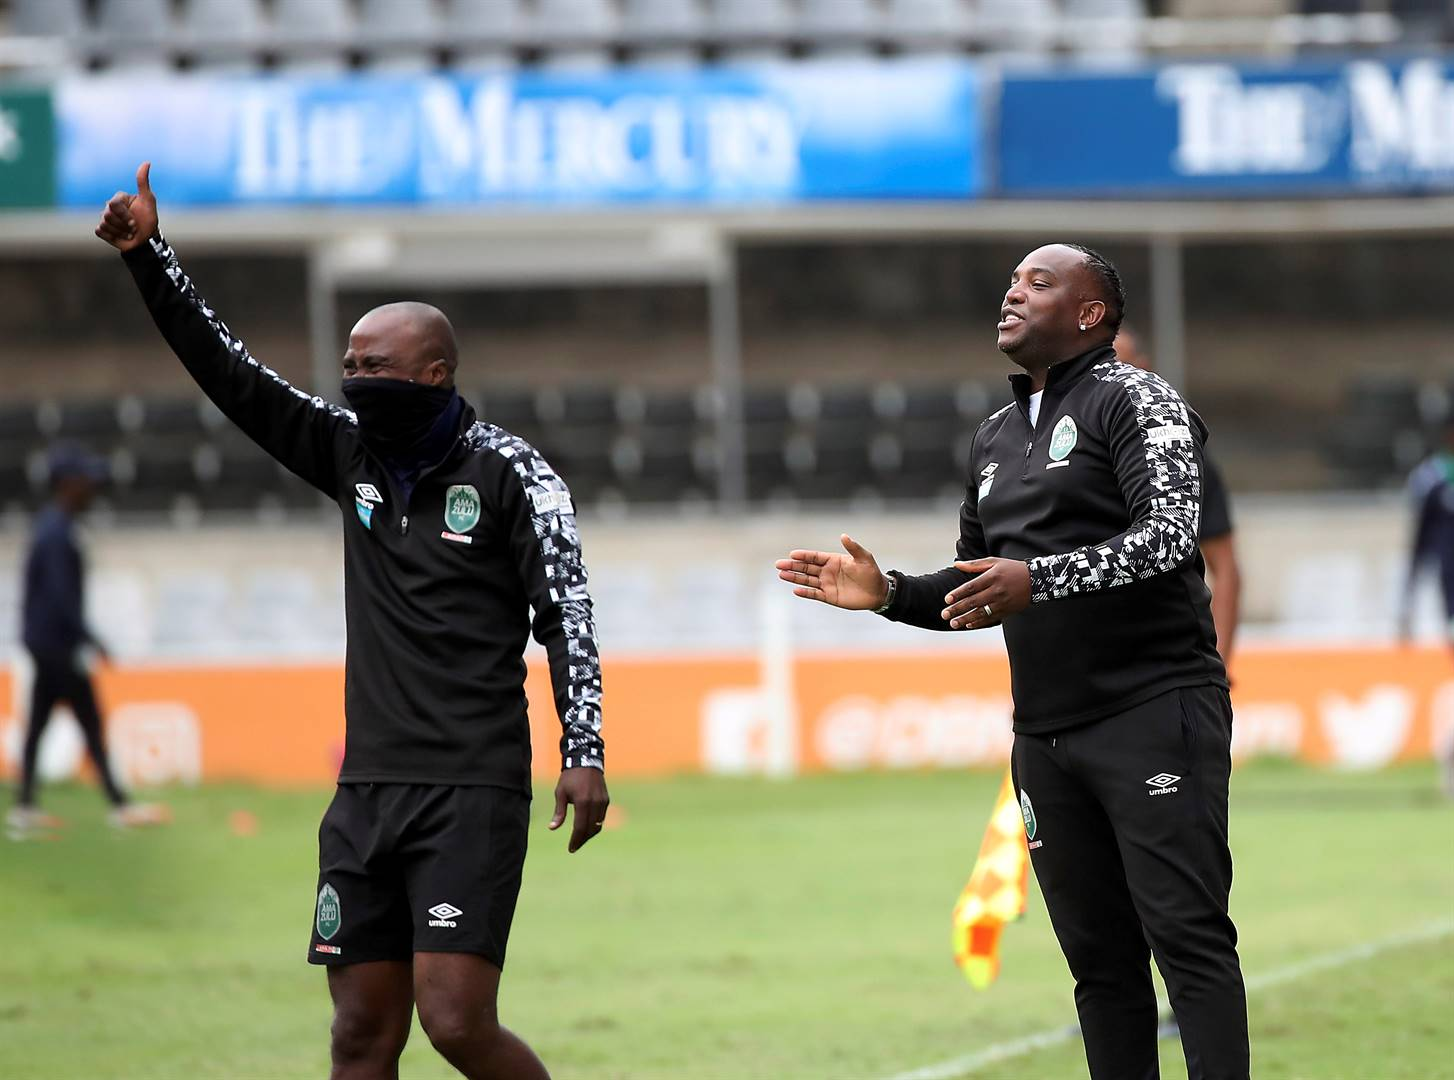 Siyabonga Nomvethe and Benni McCarthy have forged a good understanding on the AmaZulu technical bench. Picture: Gavin Barker / BackpagePix